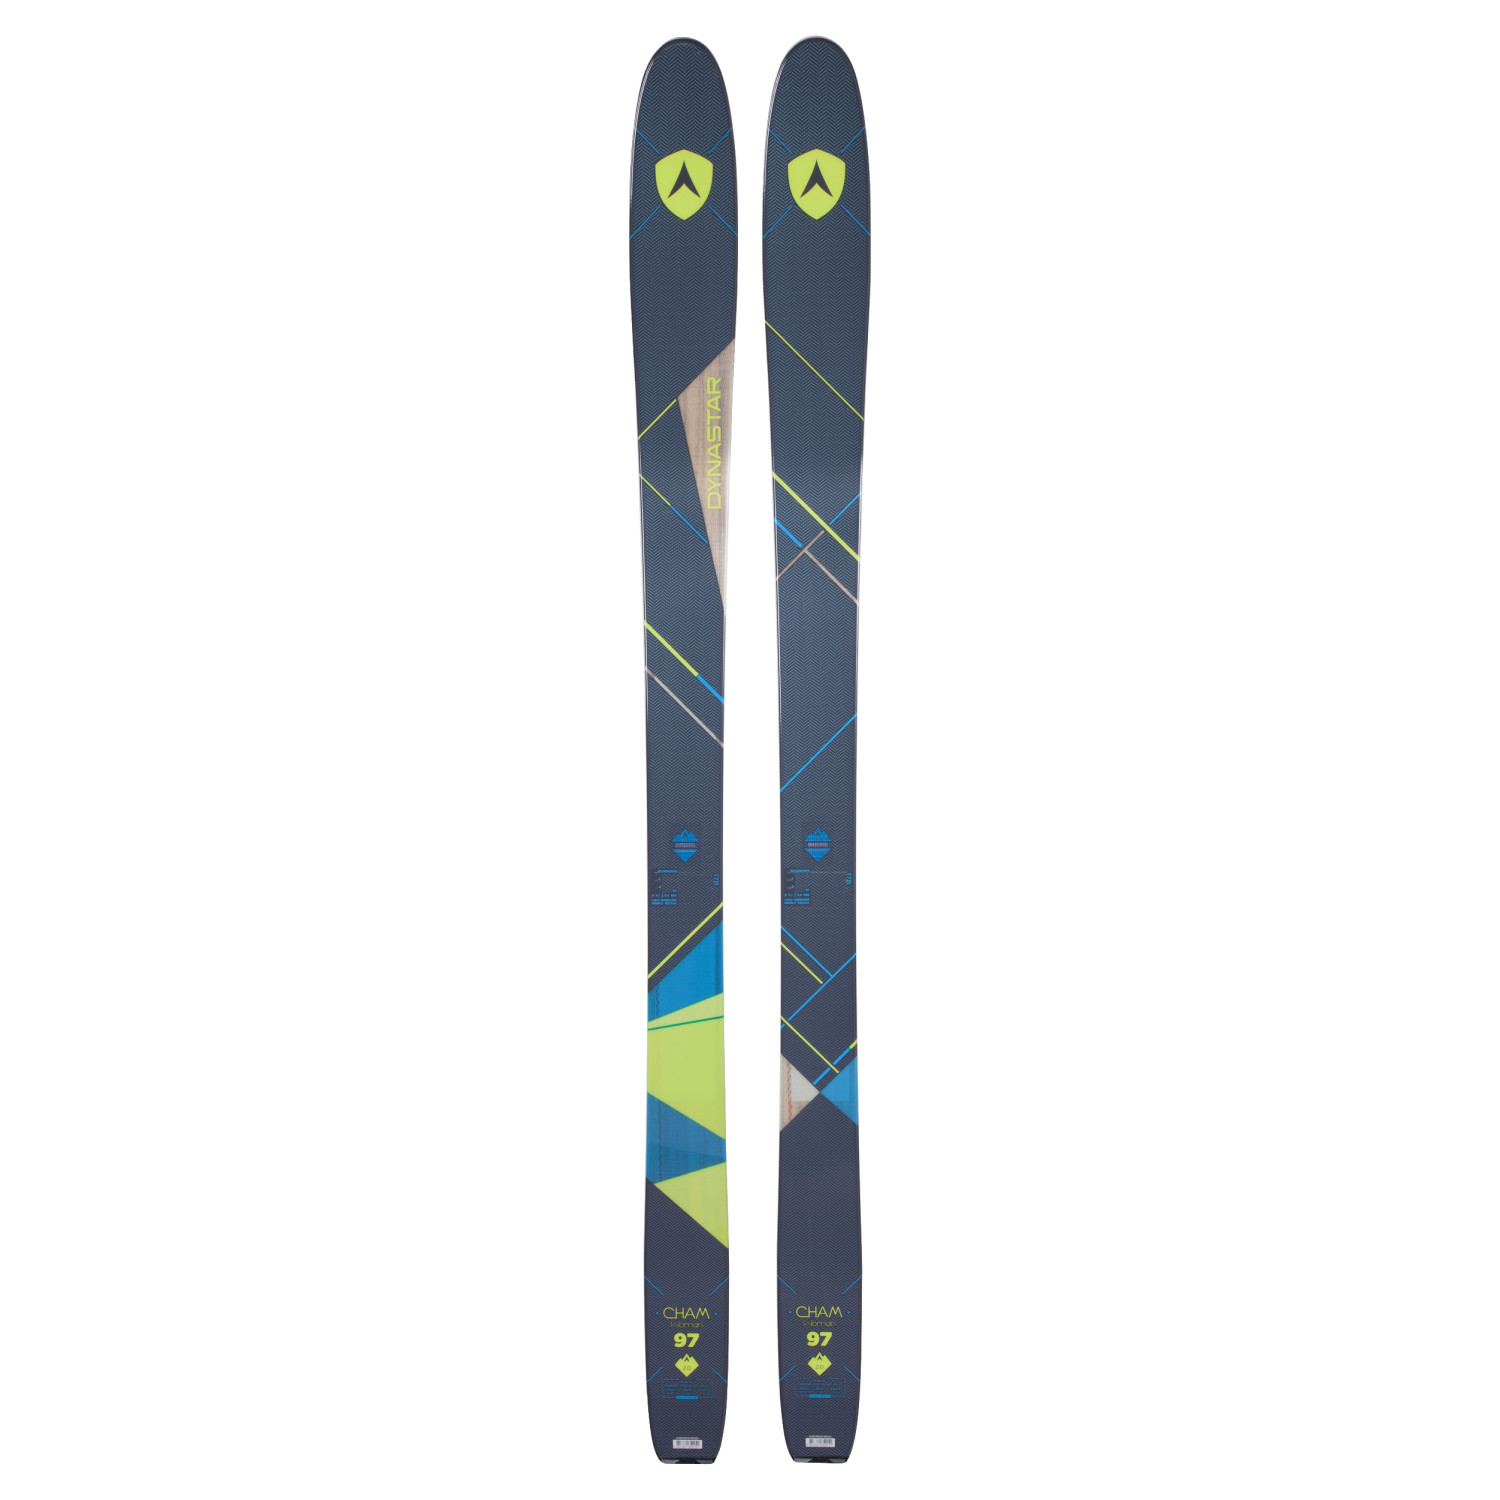 photo of a Dynastar alpine touring/telemark ski